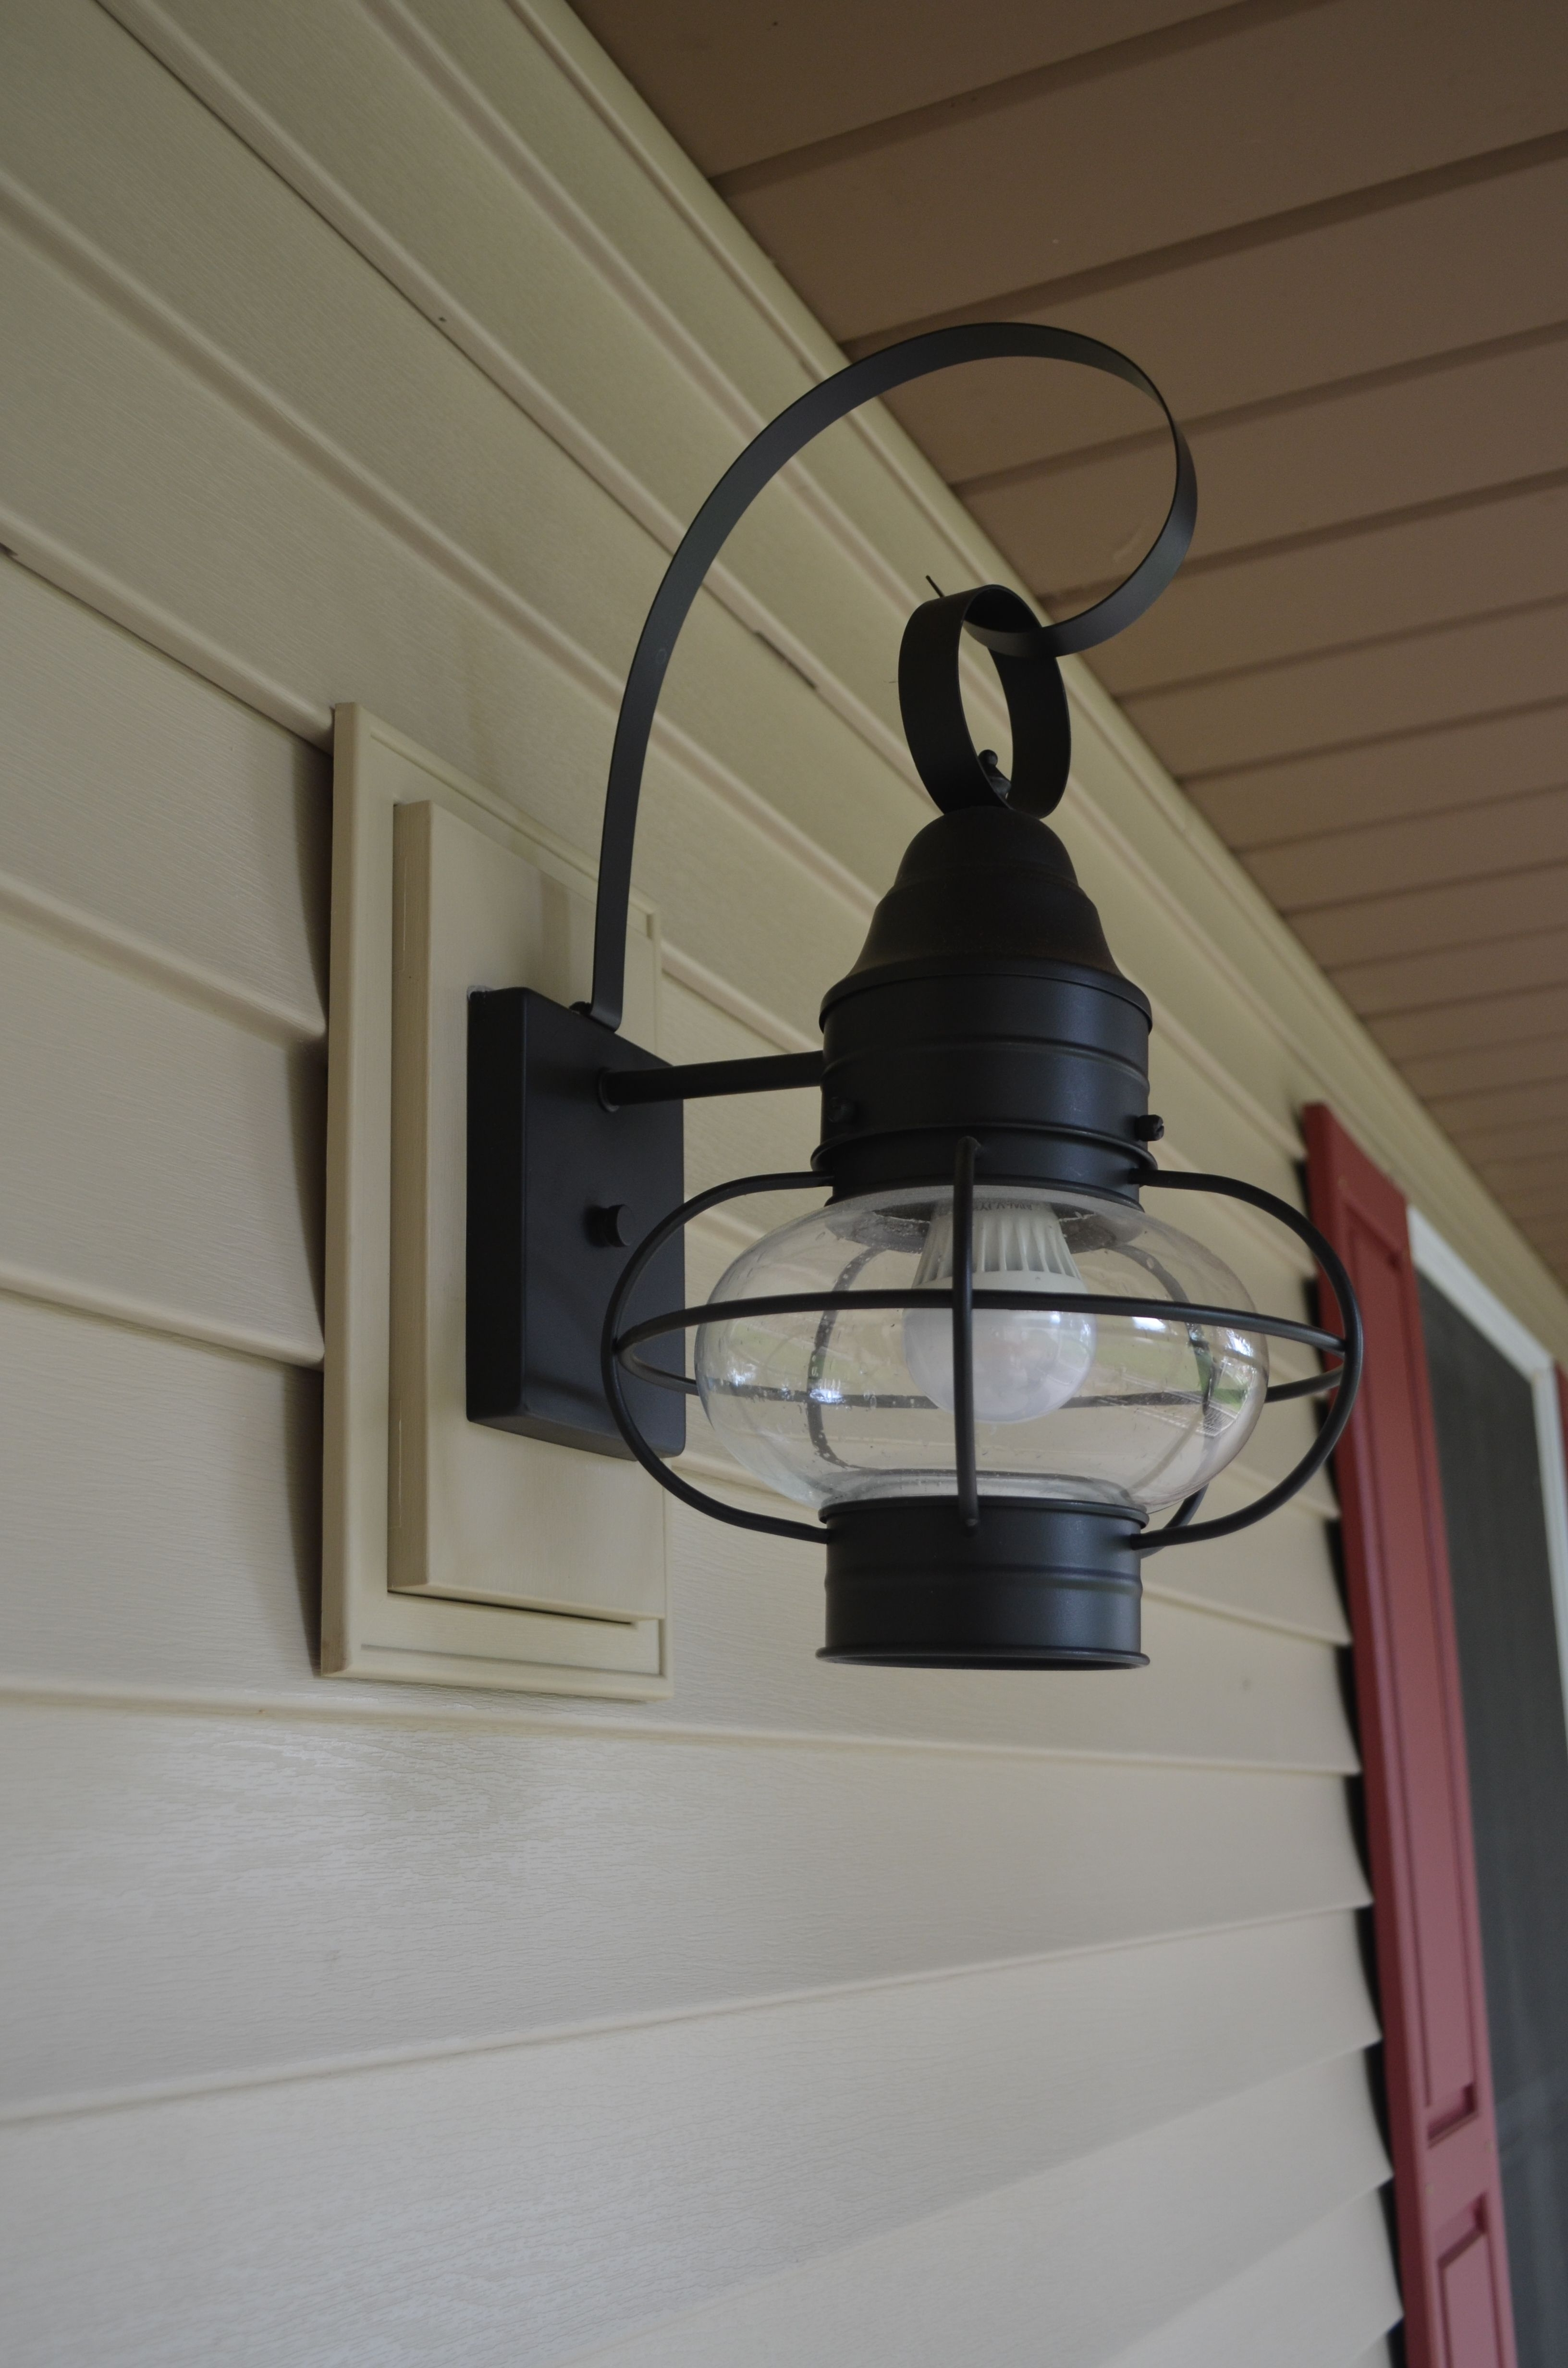 Vinyl Outdoor Wall Lighting With Regard To Famous Norandex Sterling Deluxe Vinyl Siding In Sandstone With Matching (Gallery 1 of 20)